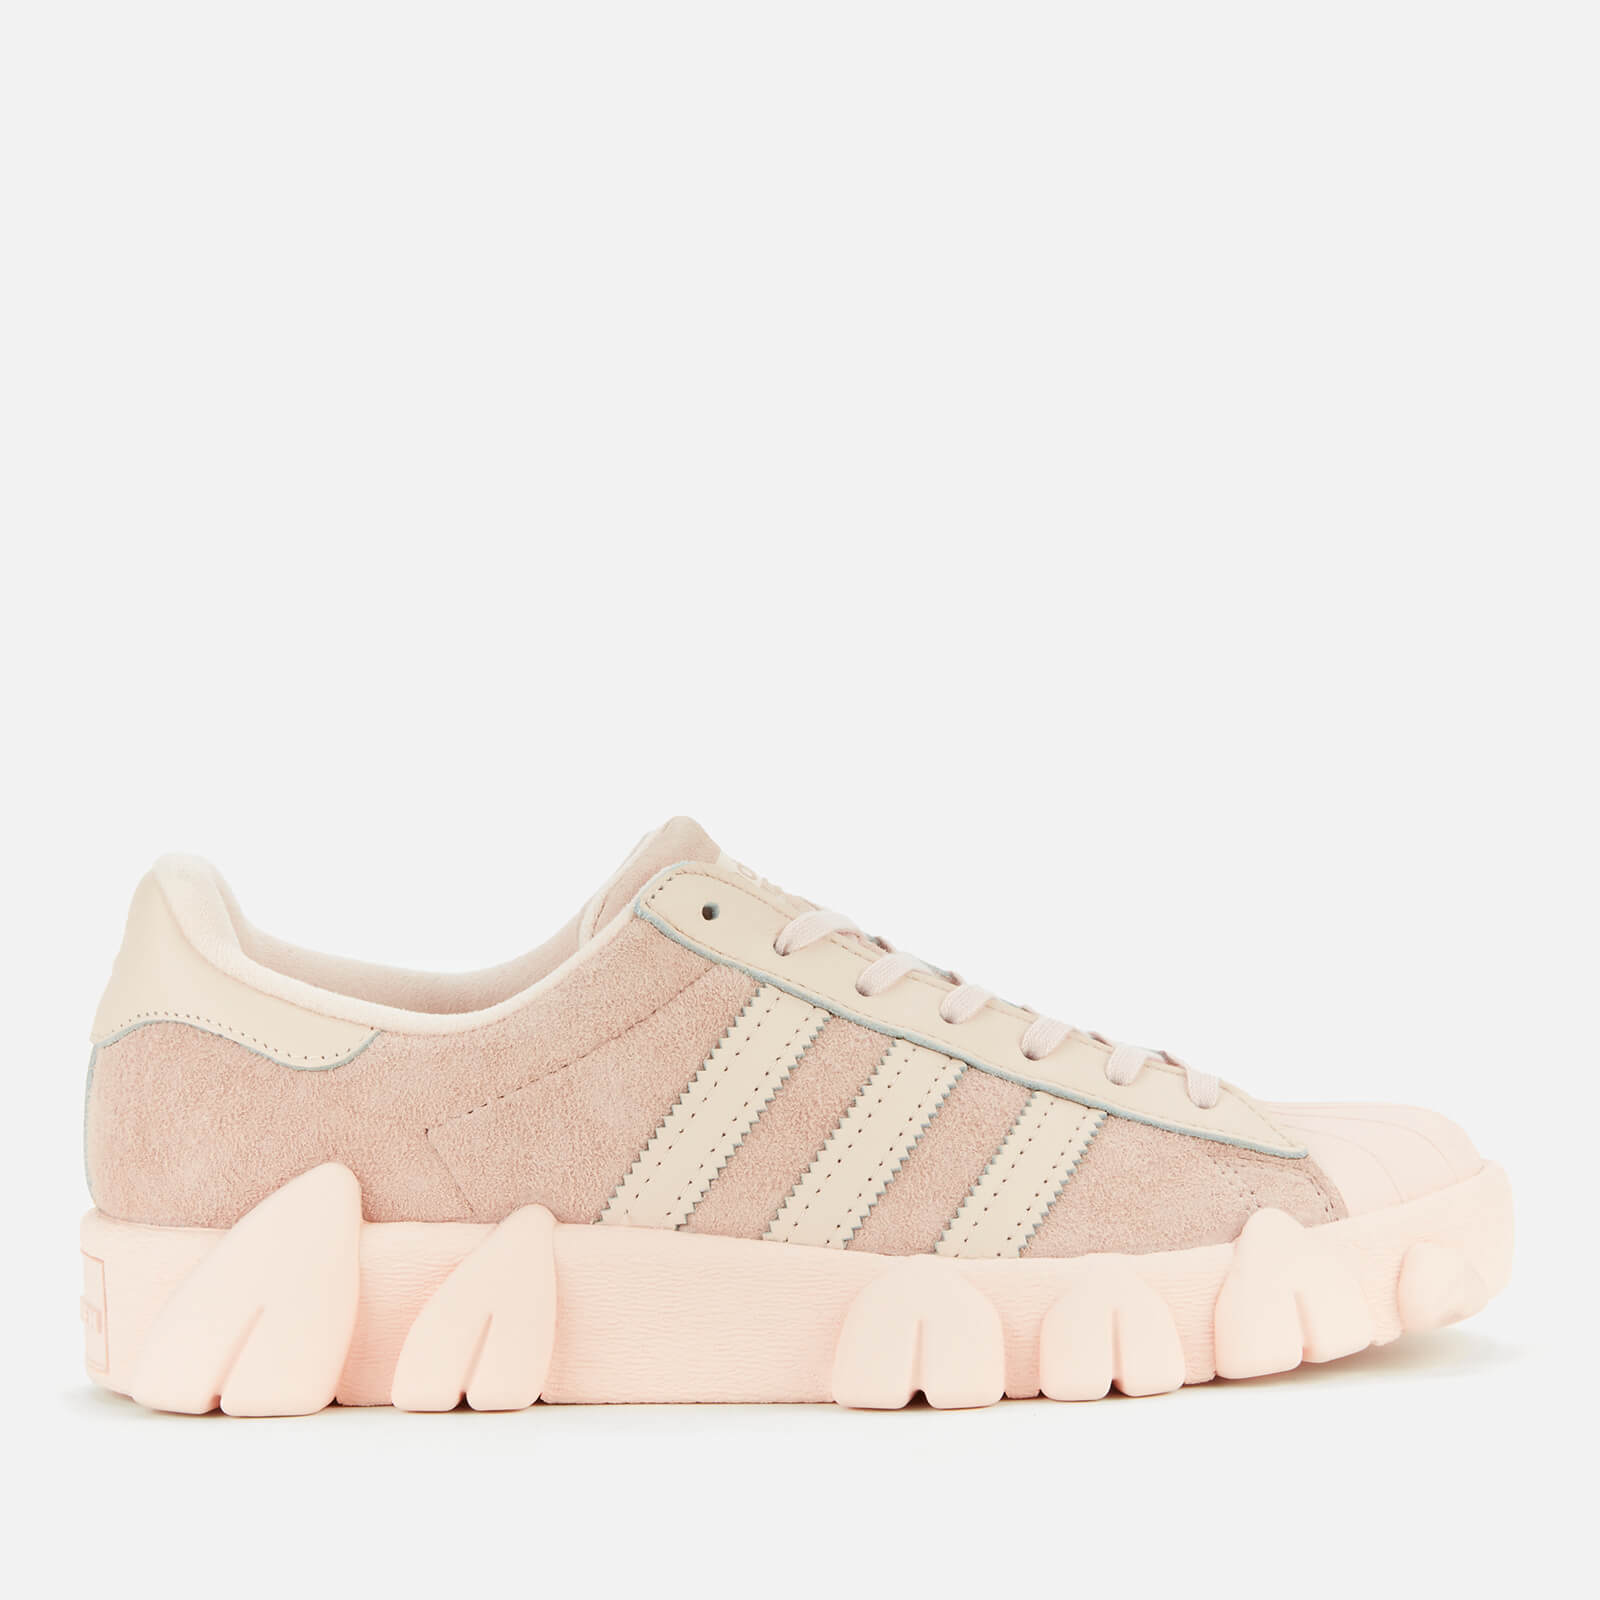 adidas X Angel Chen Women's Superstar 80S Ac Trainers - Icey Pink